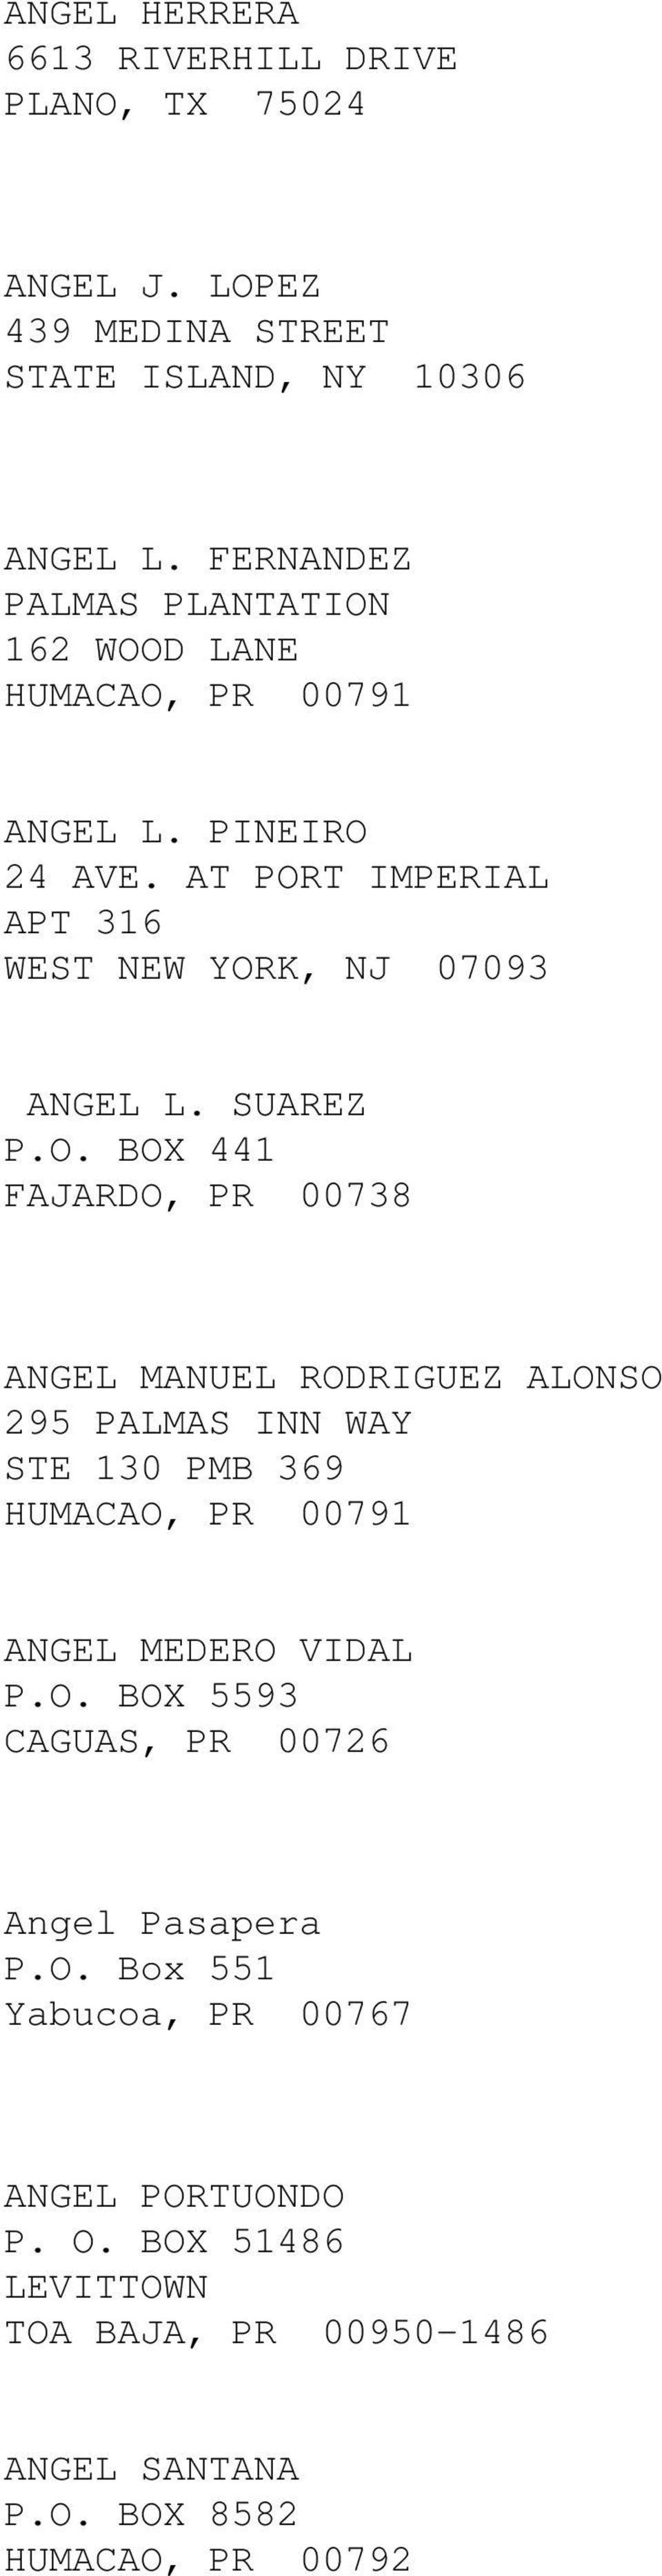 162 WOOD LANE ANGEL L. PINEIRO 24 AVE. AT PORT IMPERIAL APT 316 WEST NEW YORK, NJ 07093 ANGEL L. SUAREZ P.O. BOX 441 FAJARDO, PR 00738 ANGEL MANUEL RODRIGUEZ ALONSO 295 PALMAS INN WAY STE 130 PMB 369 ANGEL MEDERO VIDAL P.